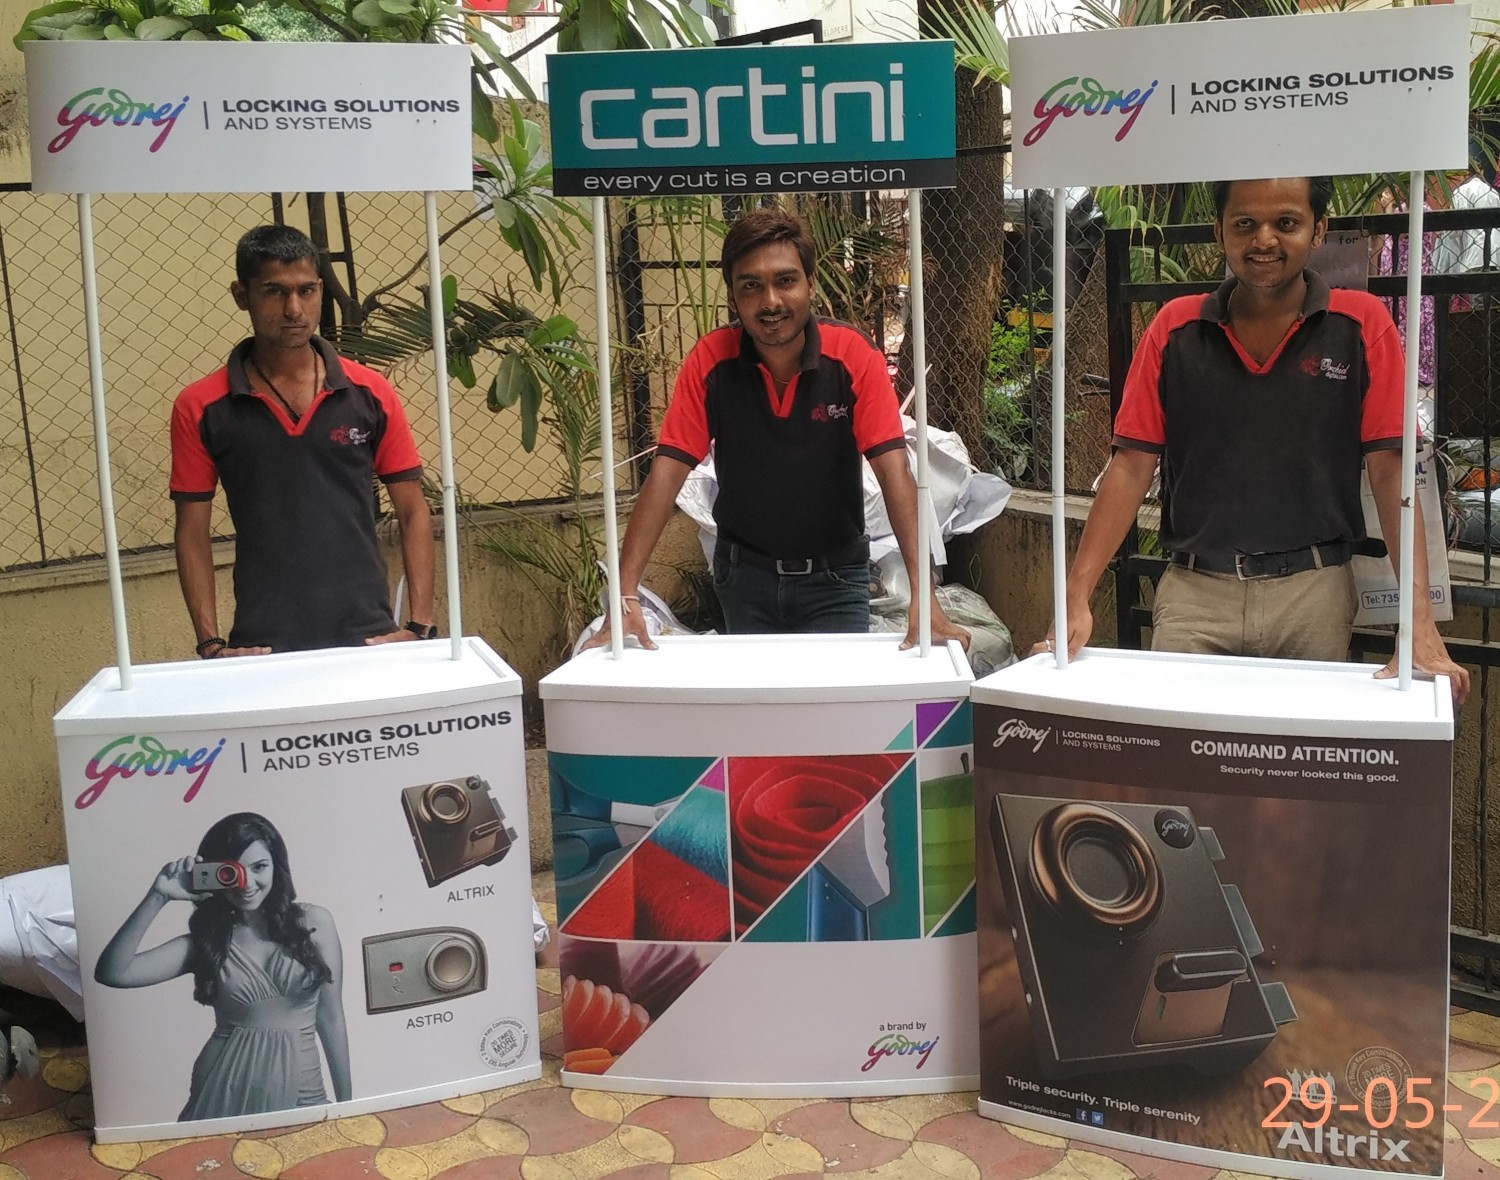 Three exhibition promo tables branded with product images and salesmen standing behind